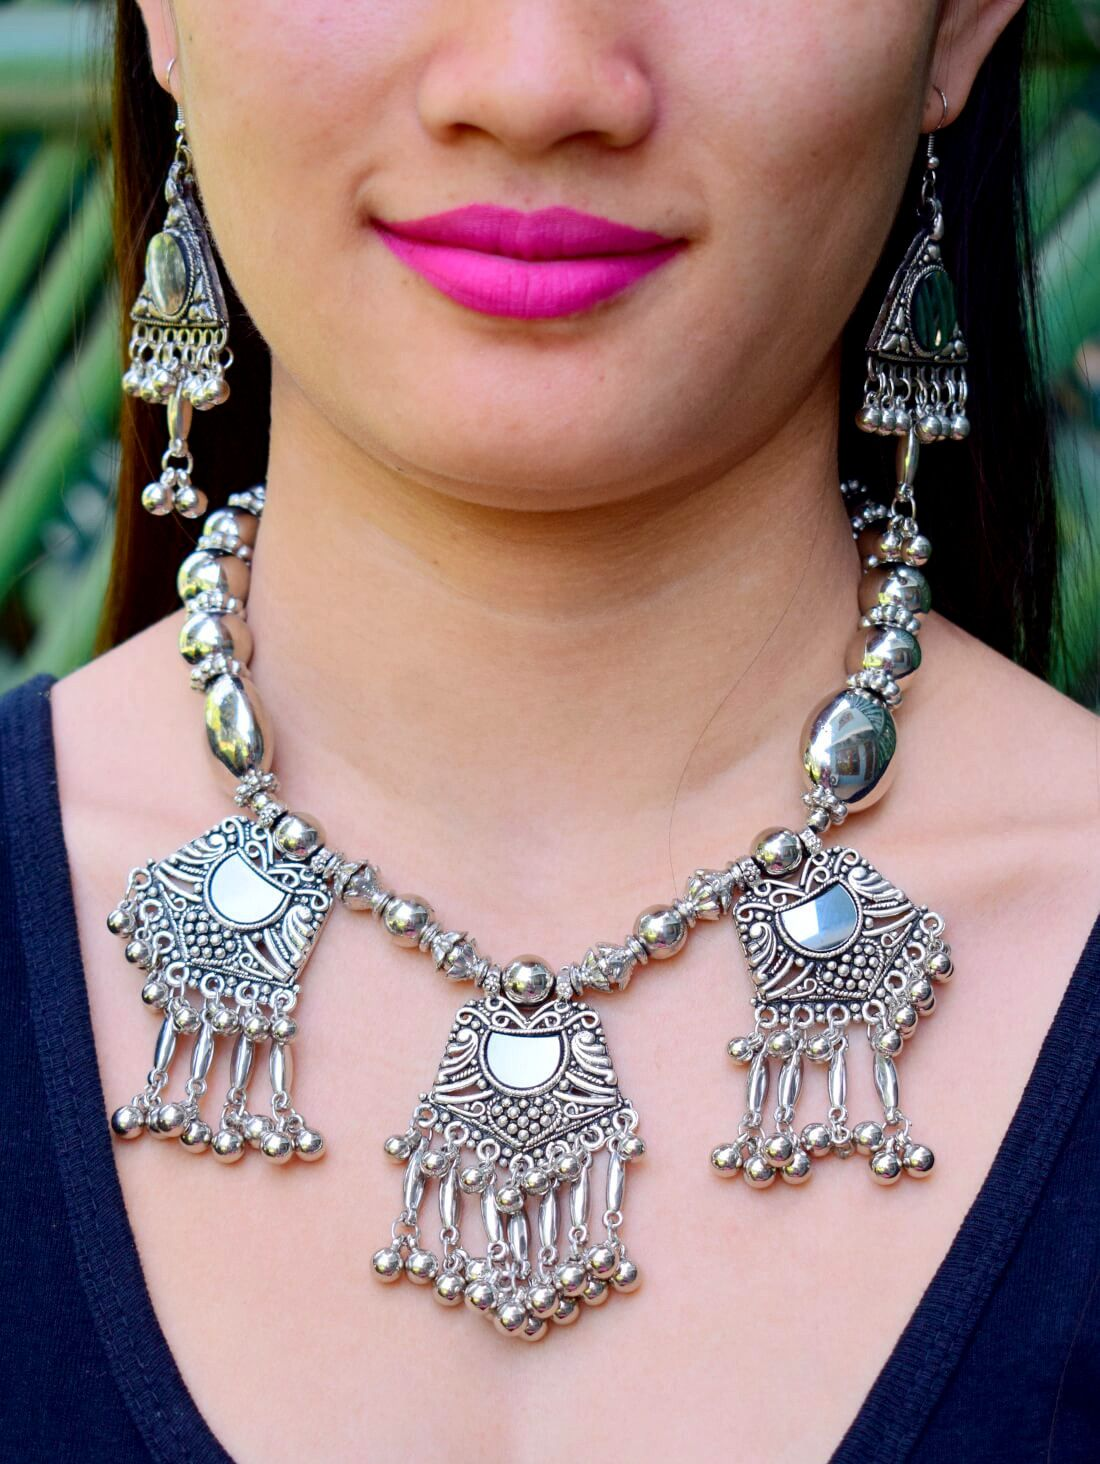 Oxidized Metal Navratri Design Necklace Set Pattern 15-GIFTPIPER1-Necklace Set